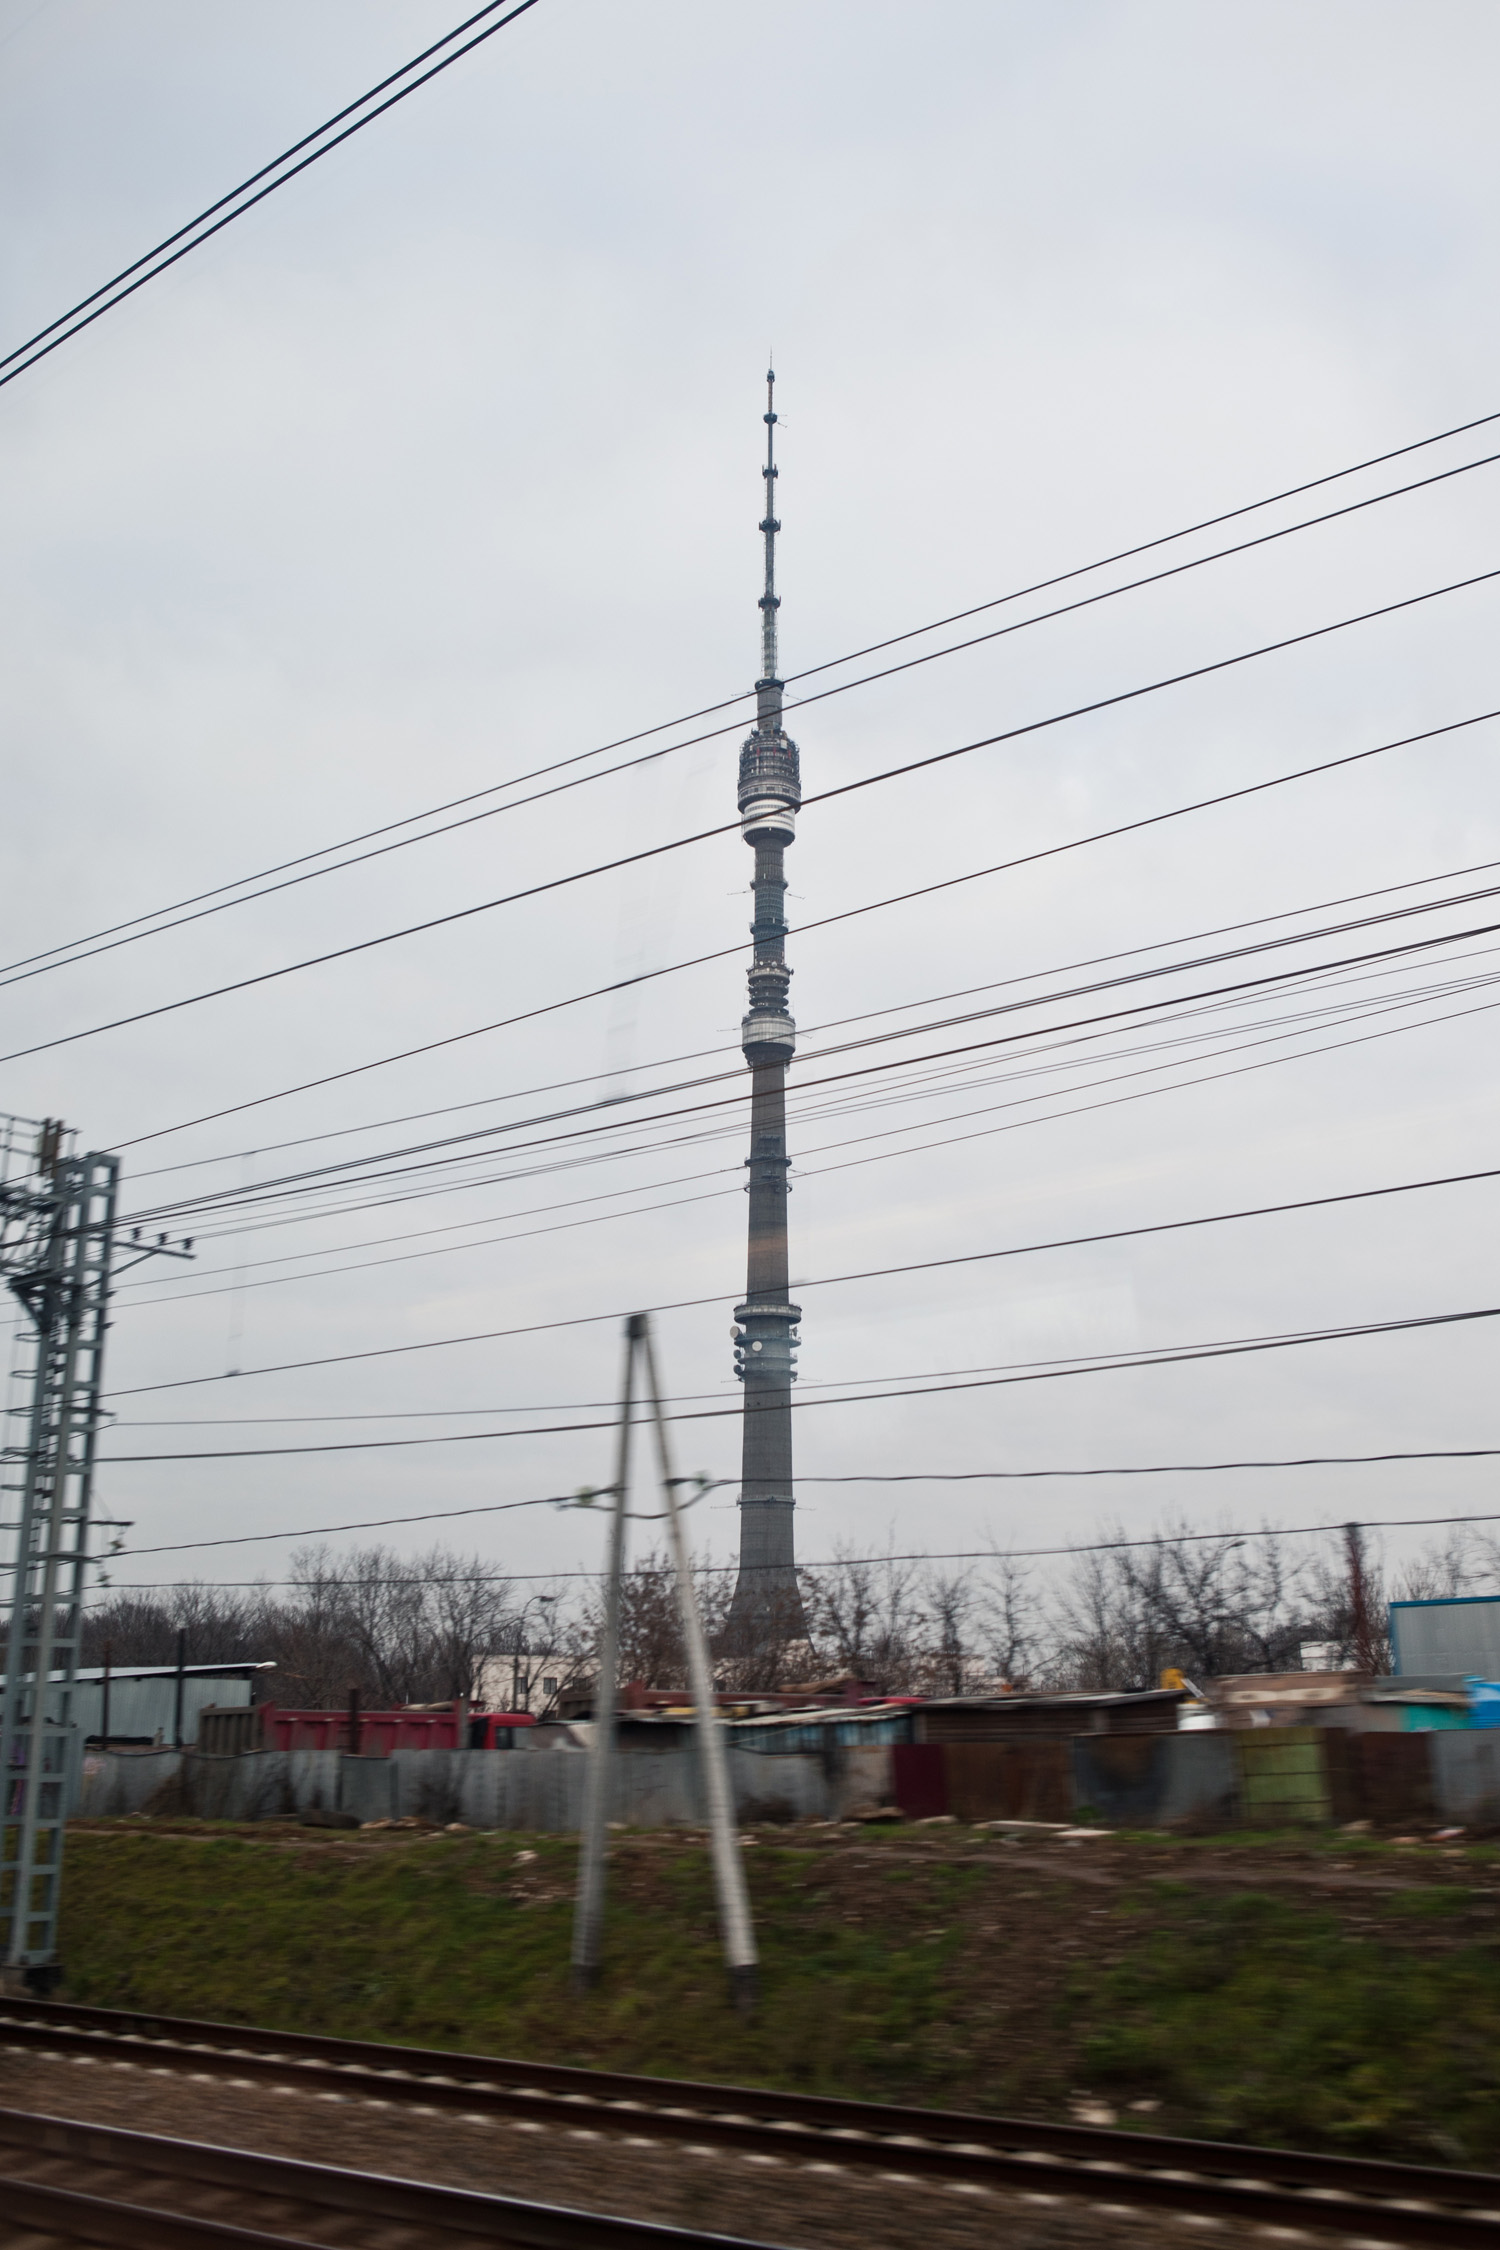 moscow-to-st-petersburg_8224455445_o.jpg